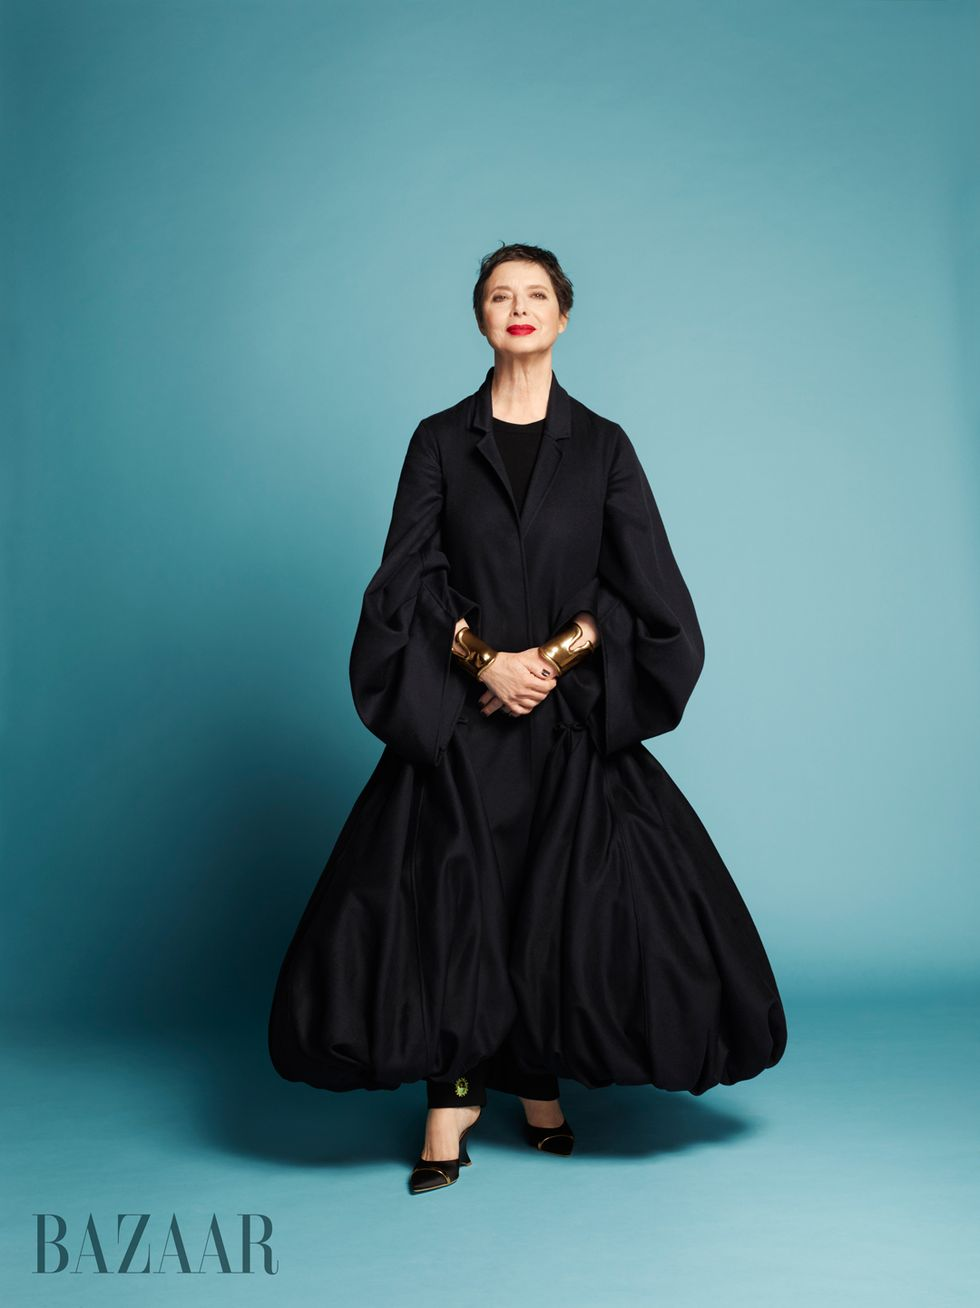 Isabella Rossellini Has Defined—and Redefined—Beauty for Decades. She Doesn't Intend to Stop Now.